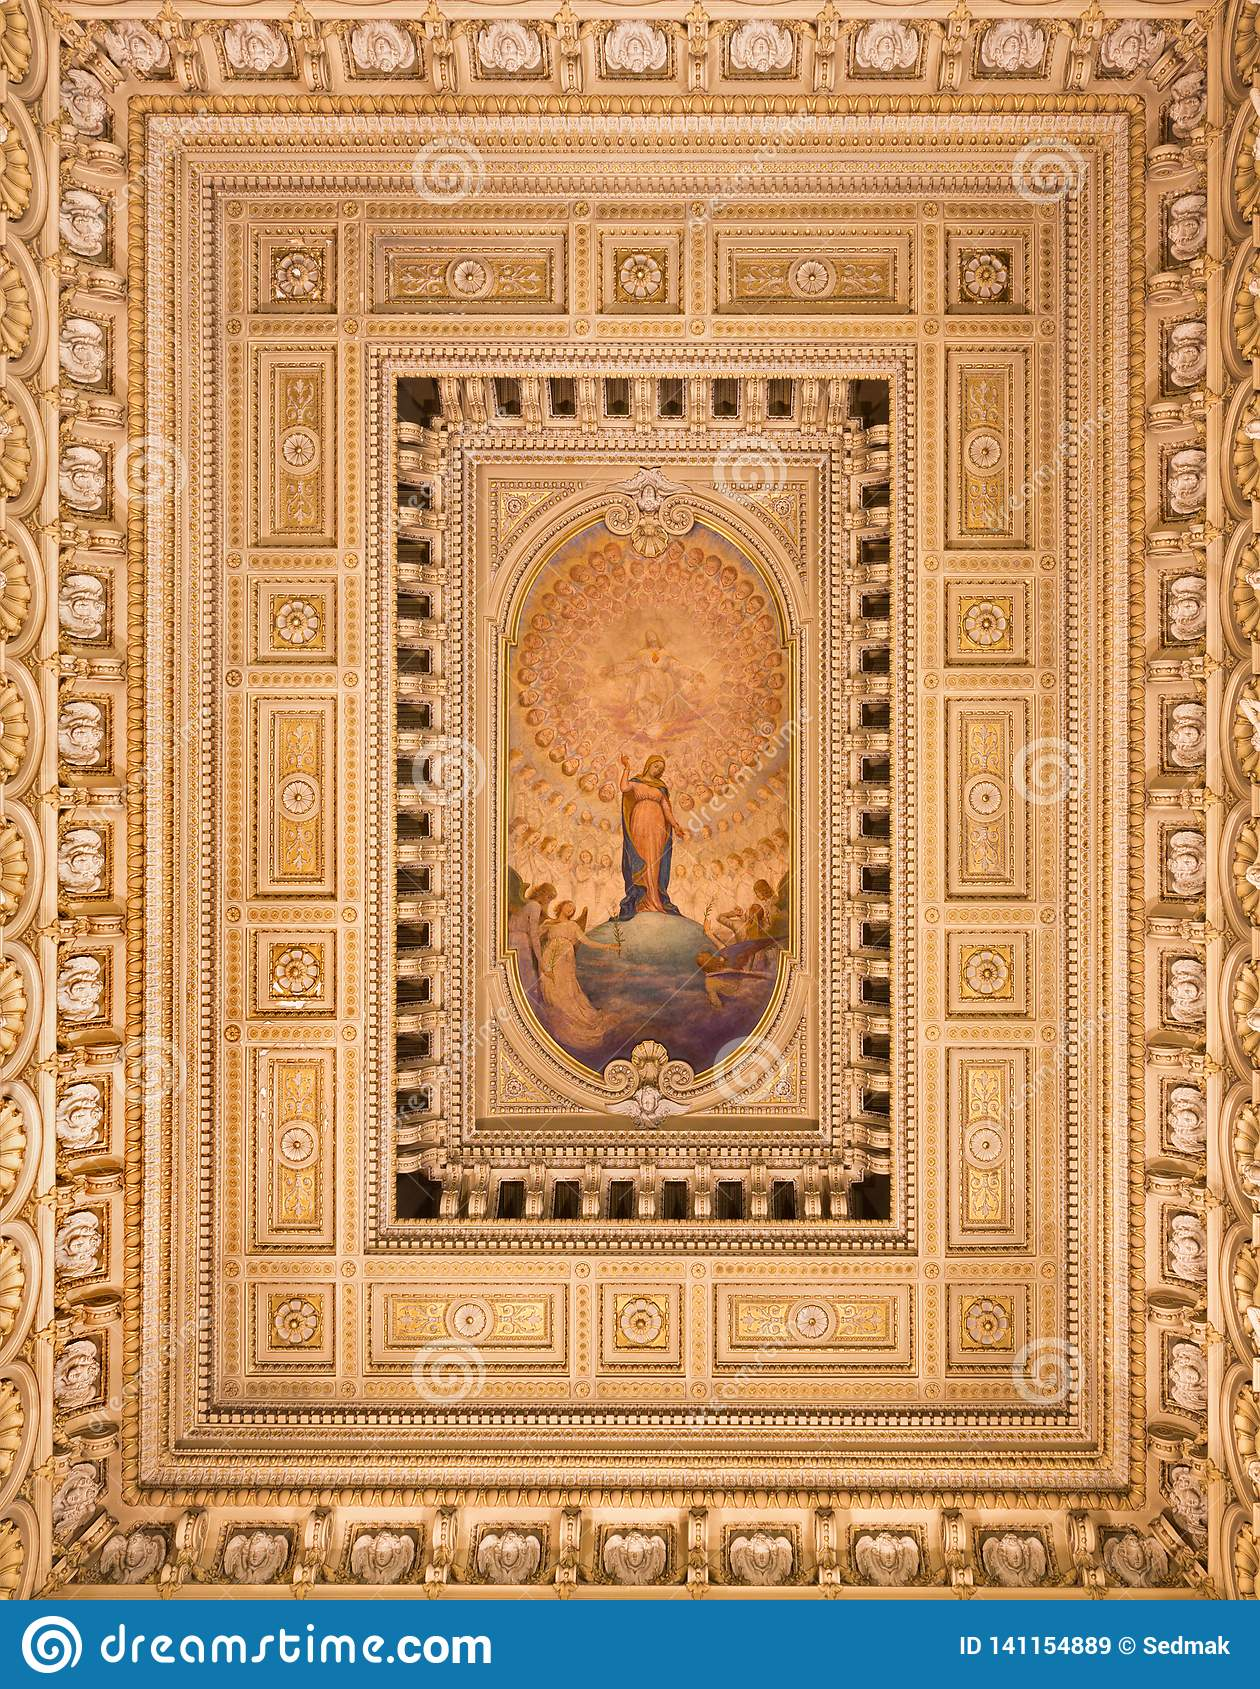 TURIN, ITALY: The ceiling fresco of Immaculate Conception and Heart of Jesus in side chapel of church Chiesa di Santo Tomaso